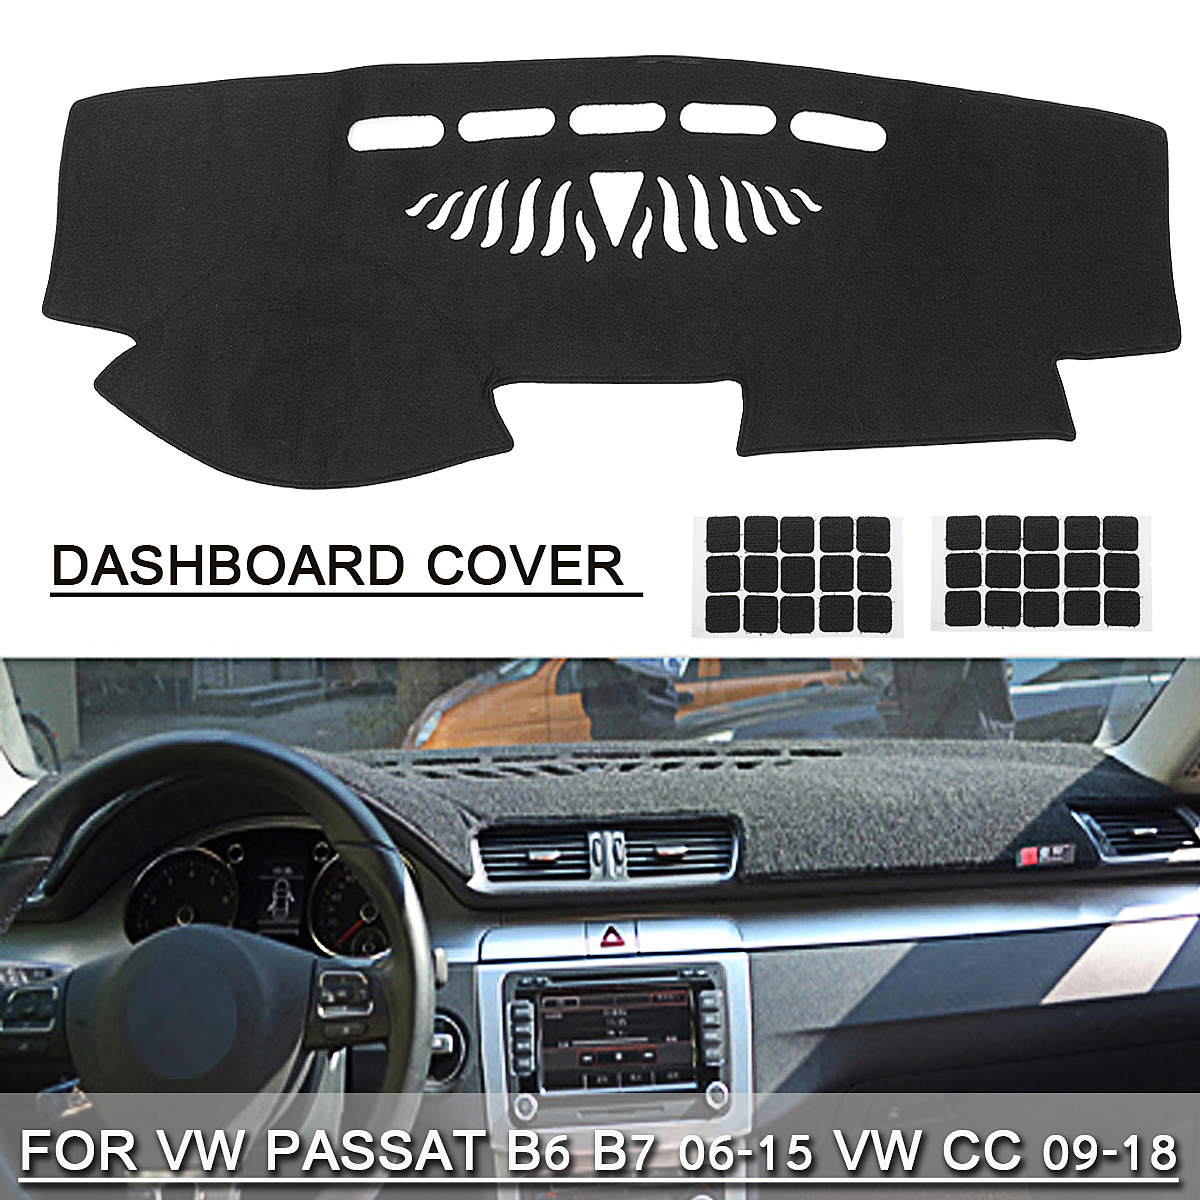 Car DashBoard Cover Mat Carpet Pad Dash Board Avoid Light Mat Black for Volkswagen VW Passat B6 B7 2006-2015 Passat CC 2009-2017 for peugeot 3008 5008 2016 2017 2018 2019 leather dashmat dashboard cover car pad dash mat sunshade carpet cover car